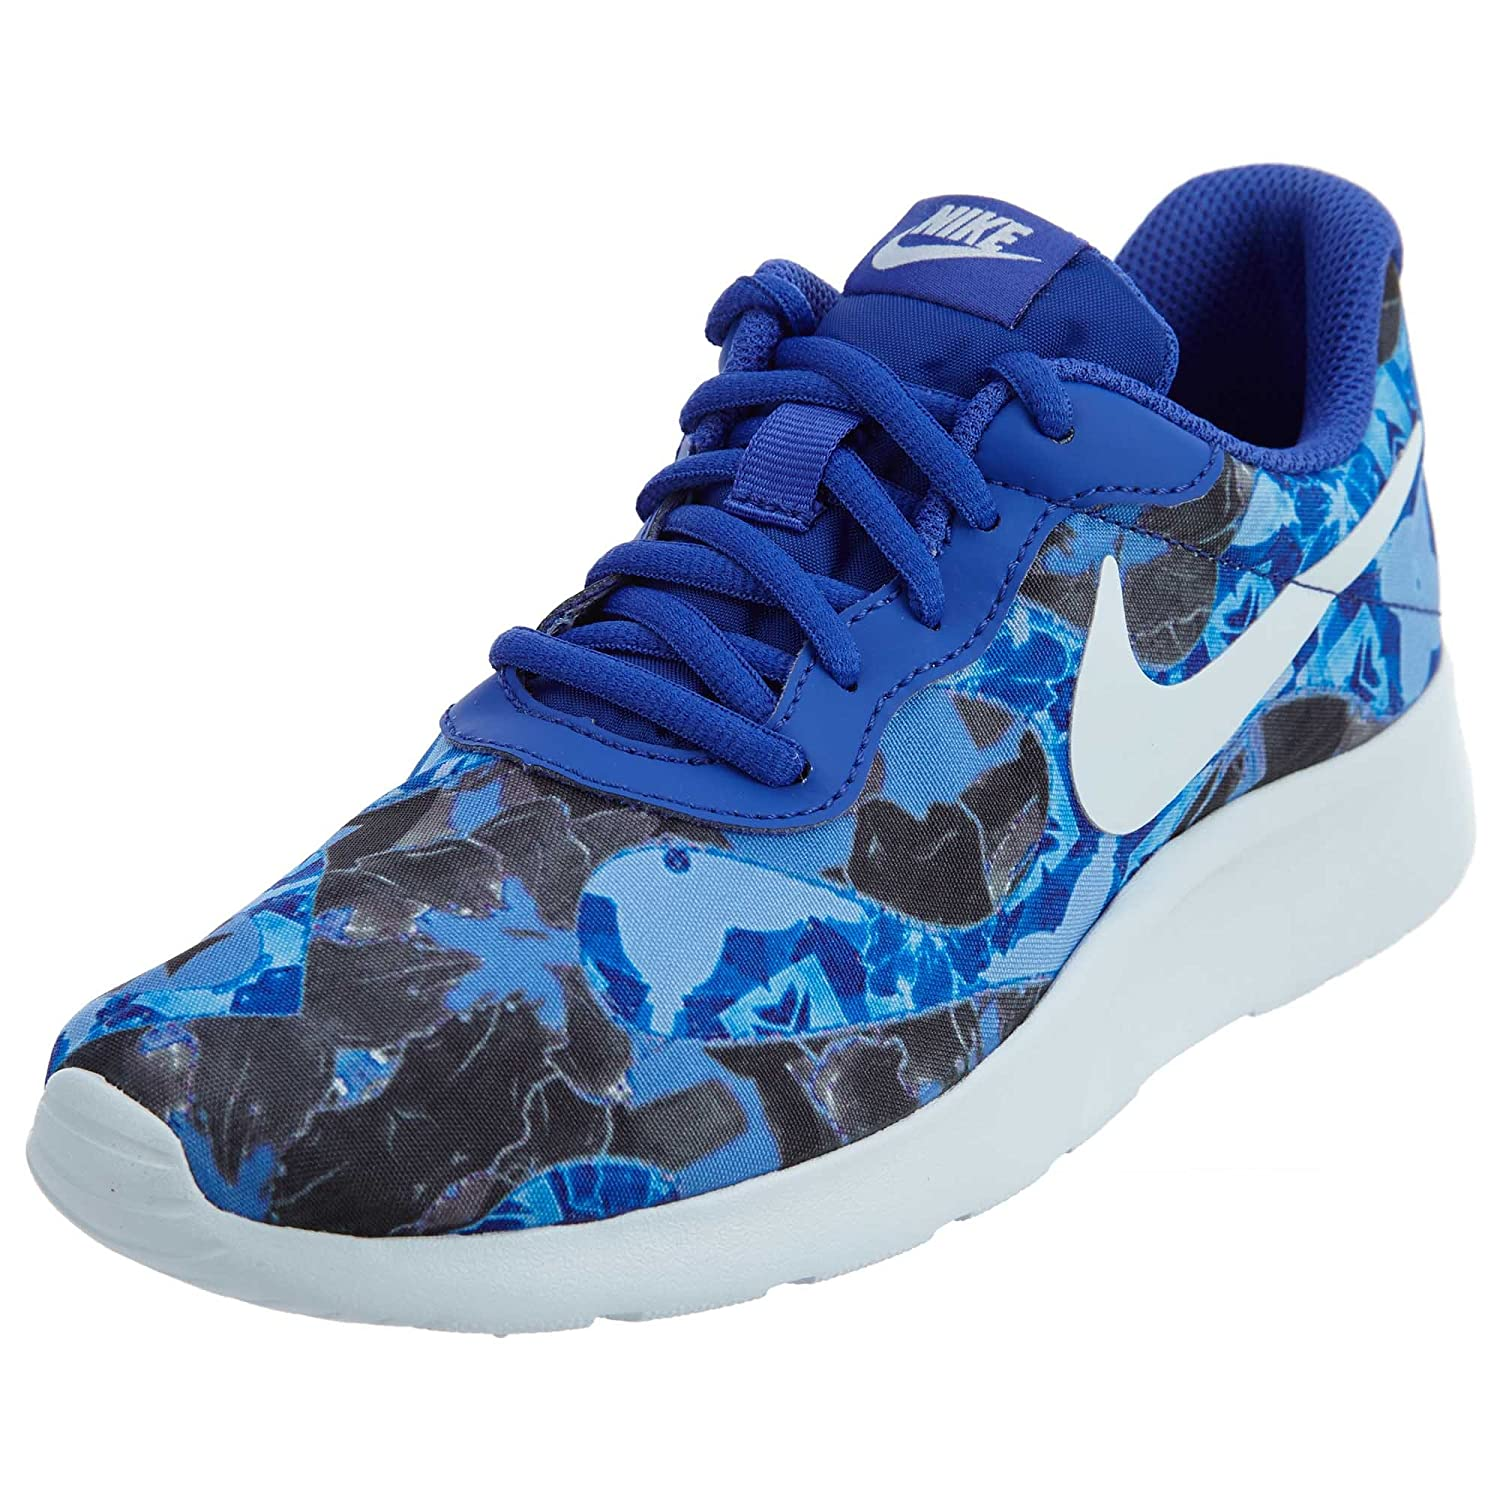 pre order factory outlets official photos Nike Tanjun Print Womens